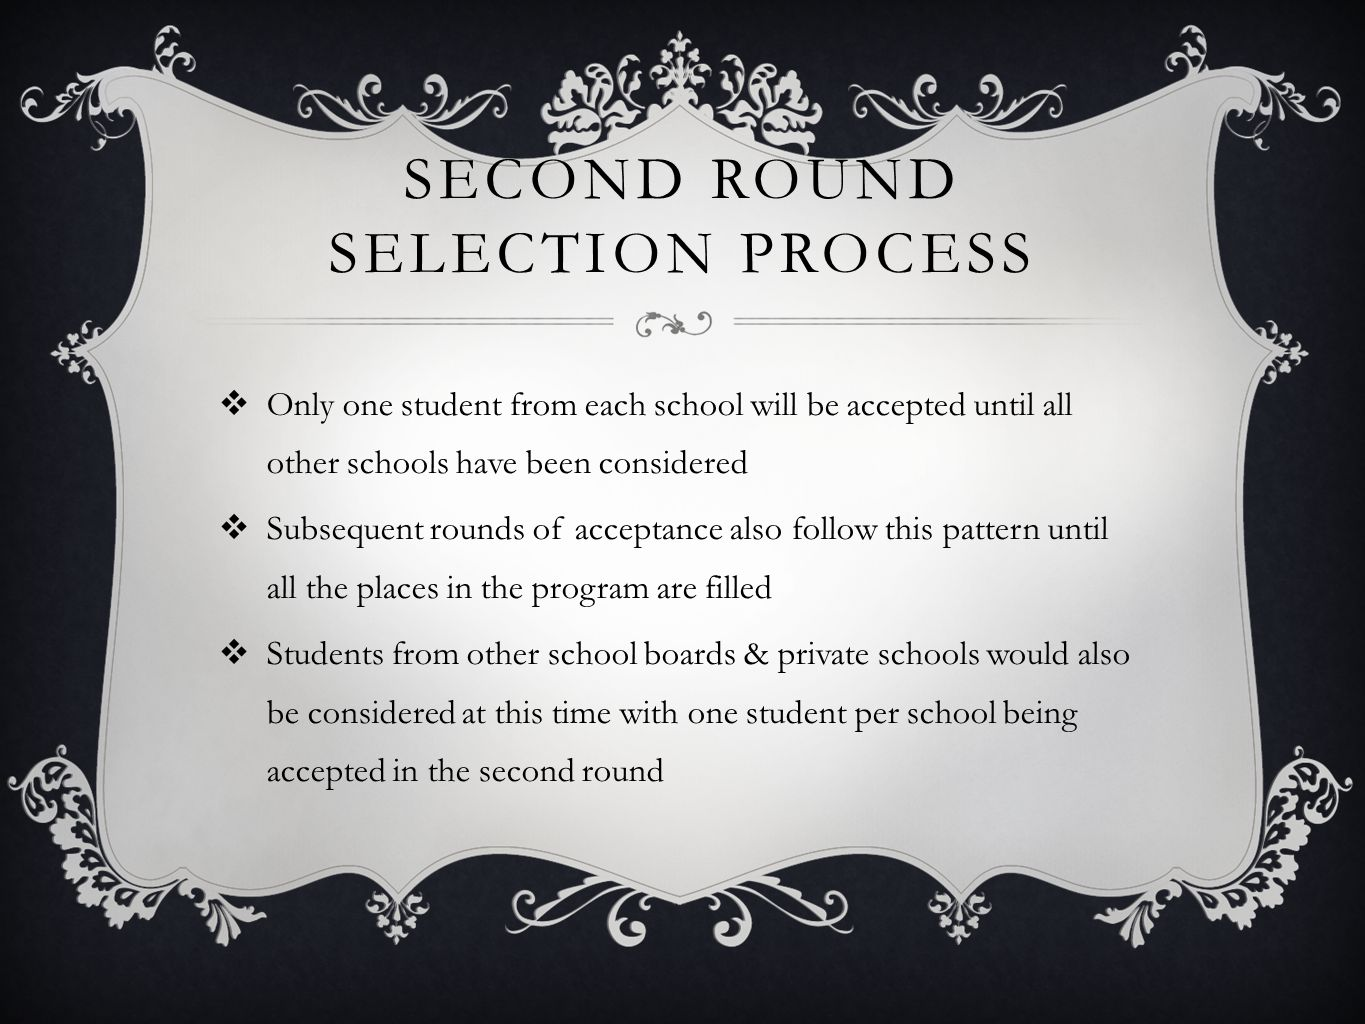 Second round selection process